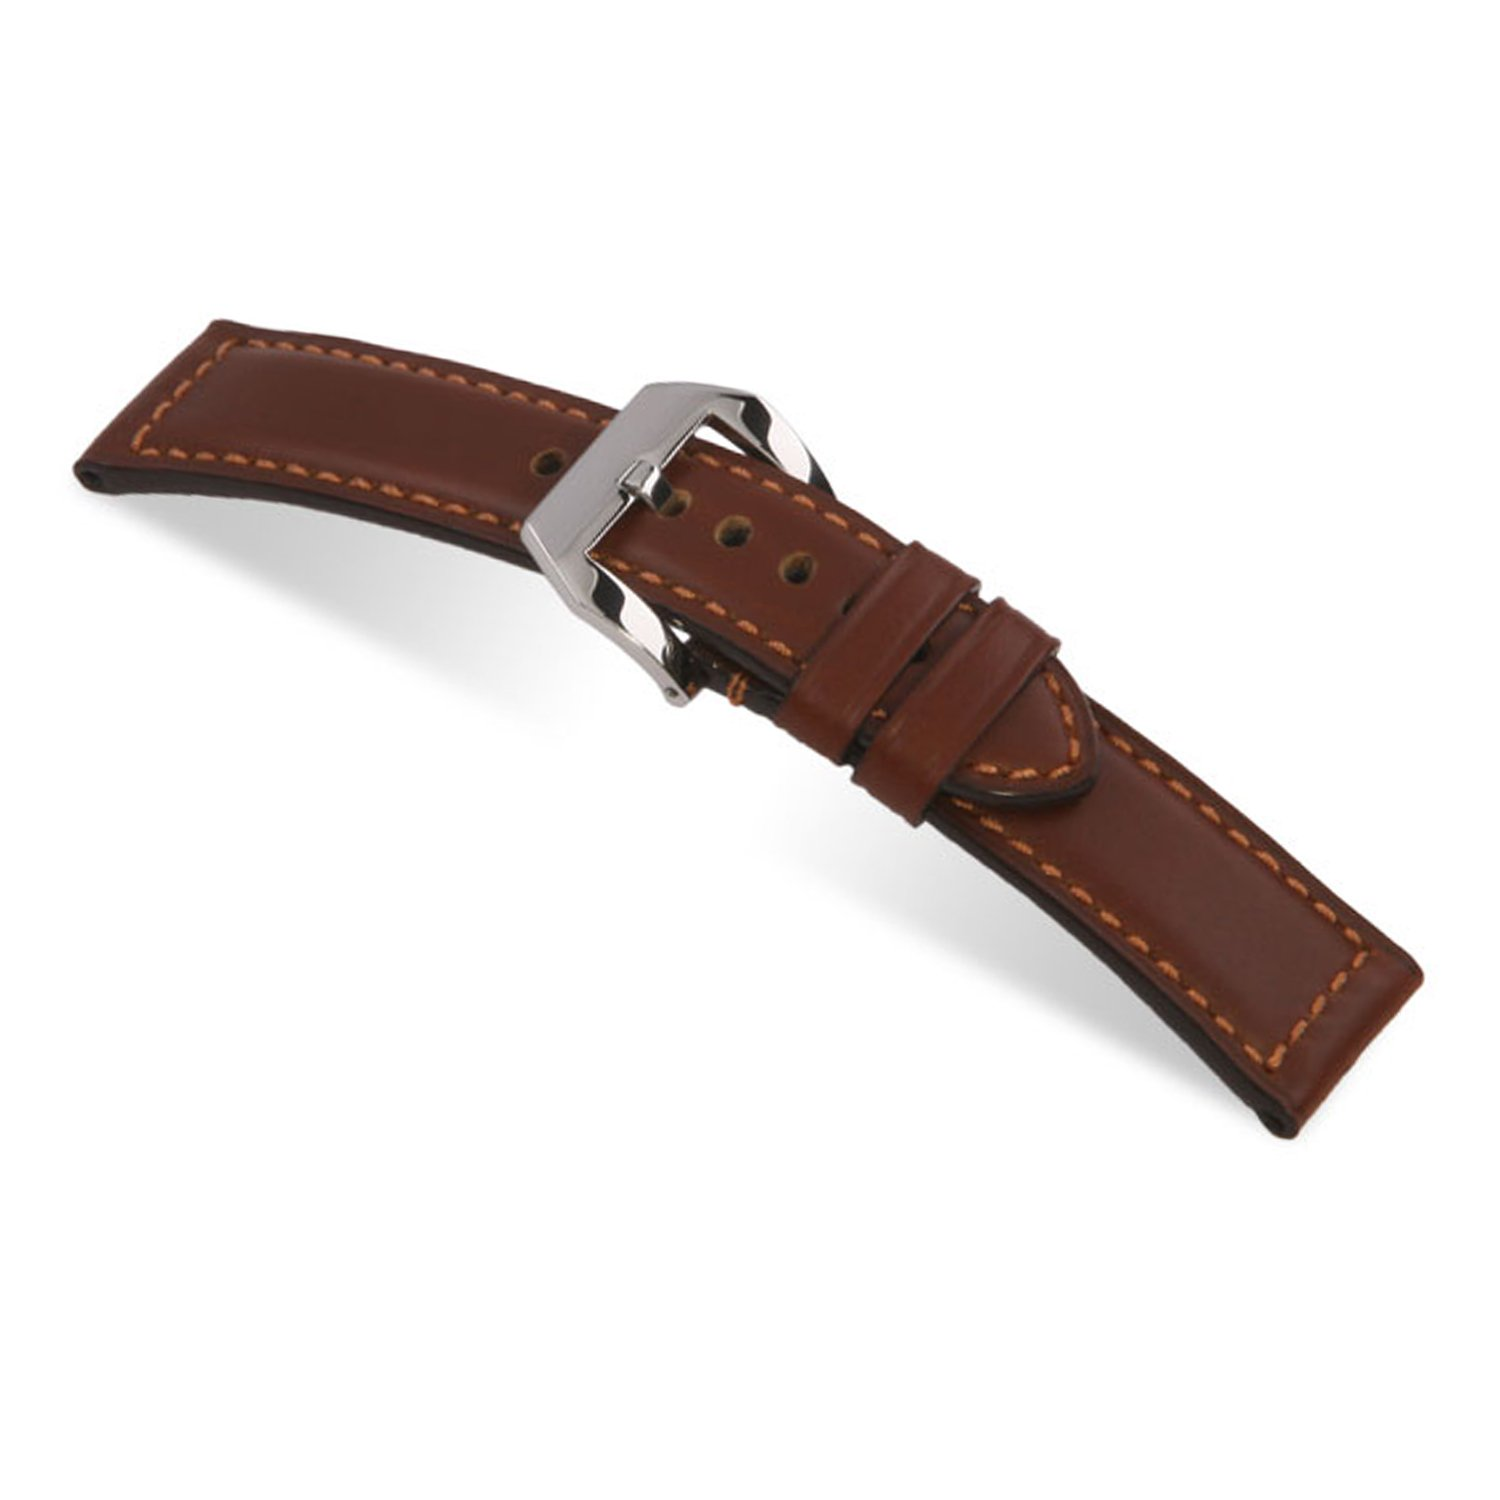 rios1931 Milano – 純正防水レザーWatch Band with Attached pre-v Buckle for Panerai Watches 115 x 75 24x24mm マホガニー  マホガニー 24x24mm B074CJF1FN